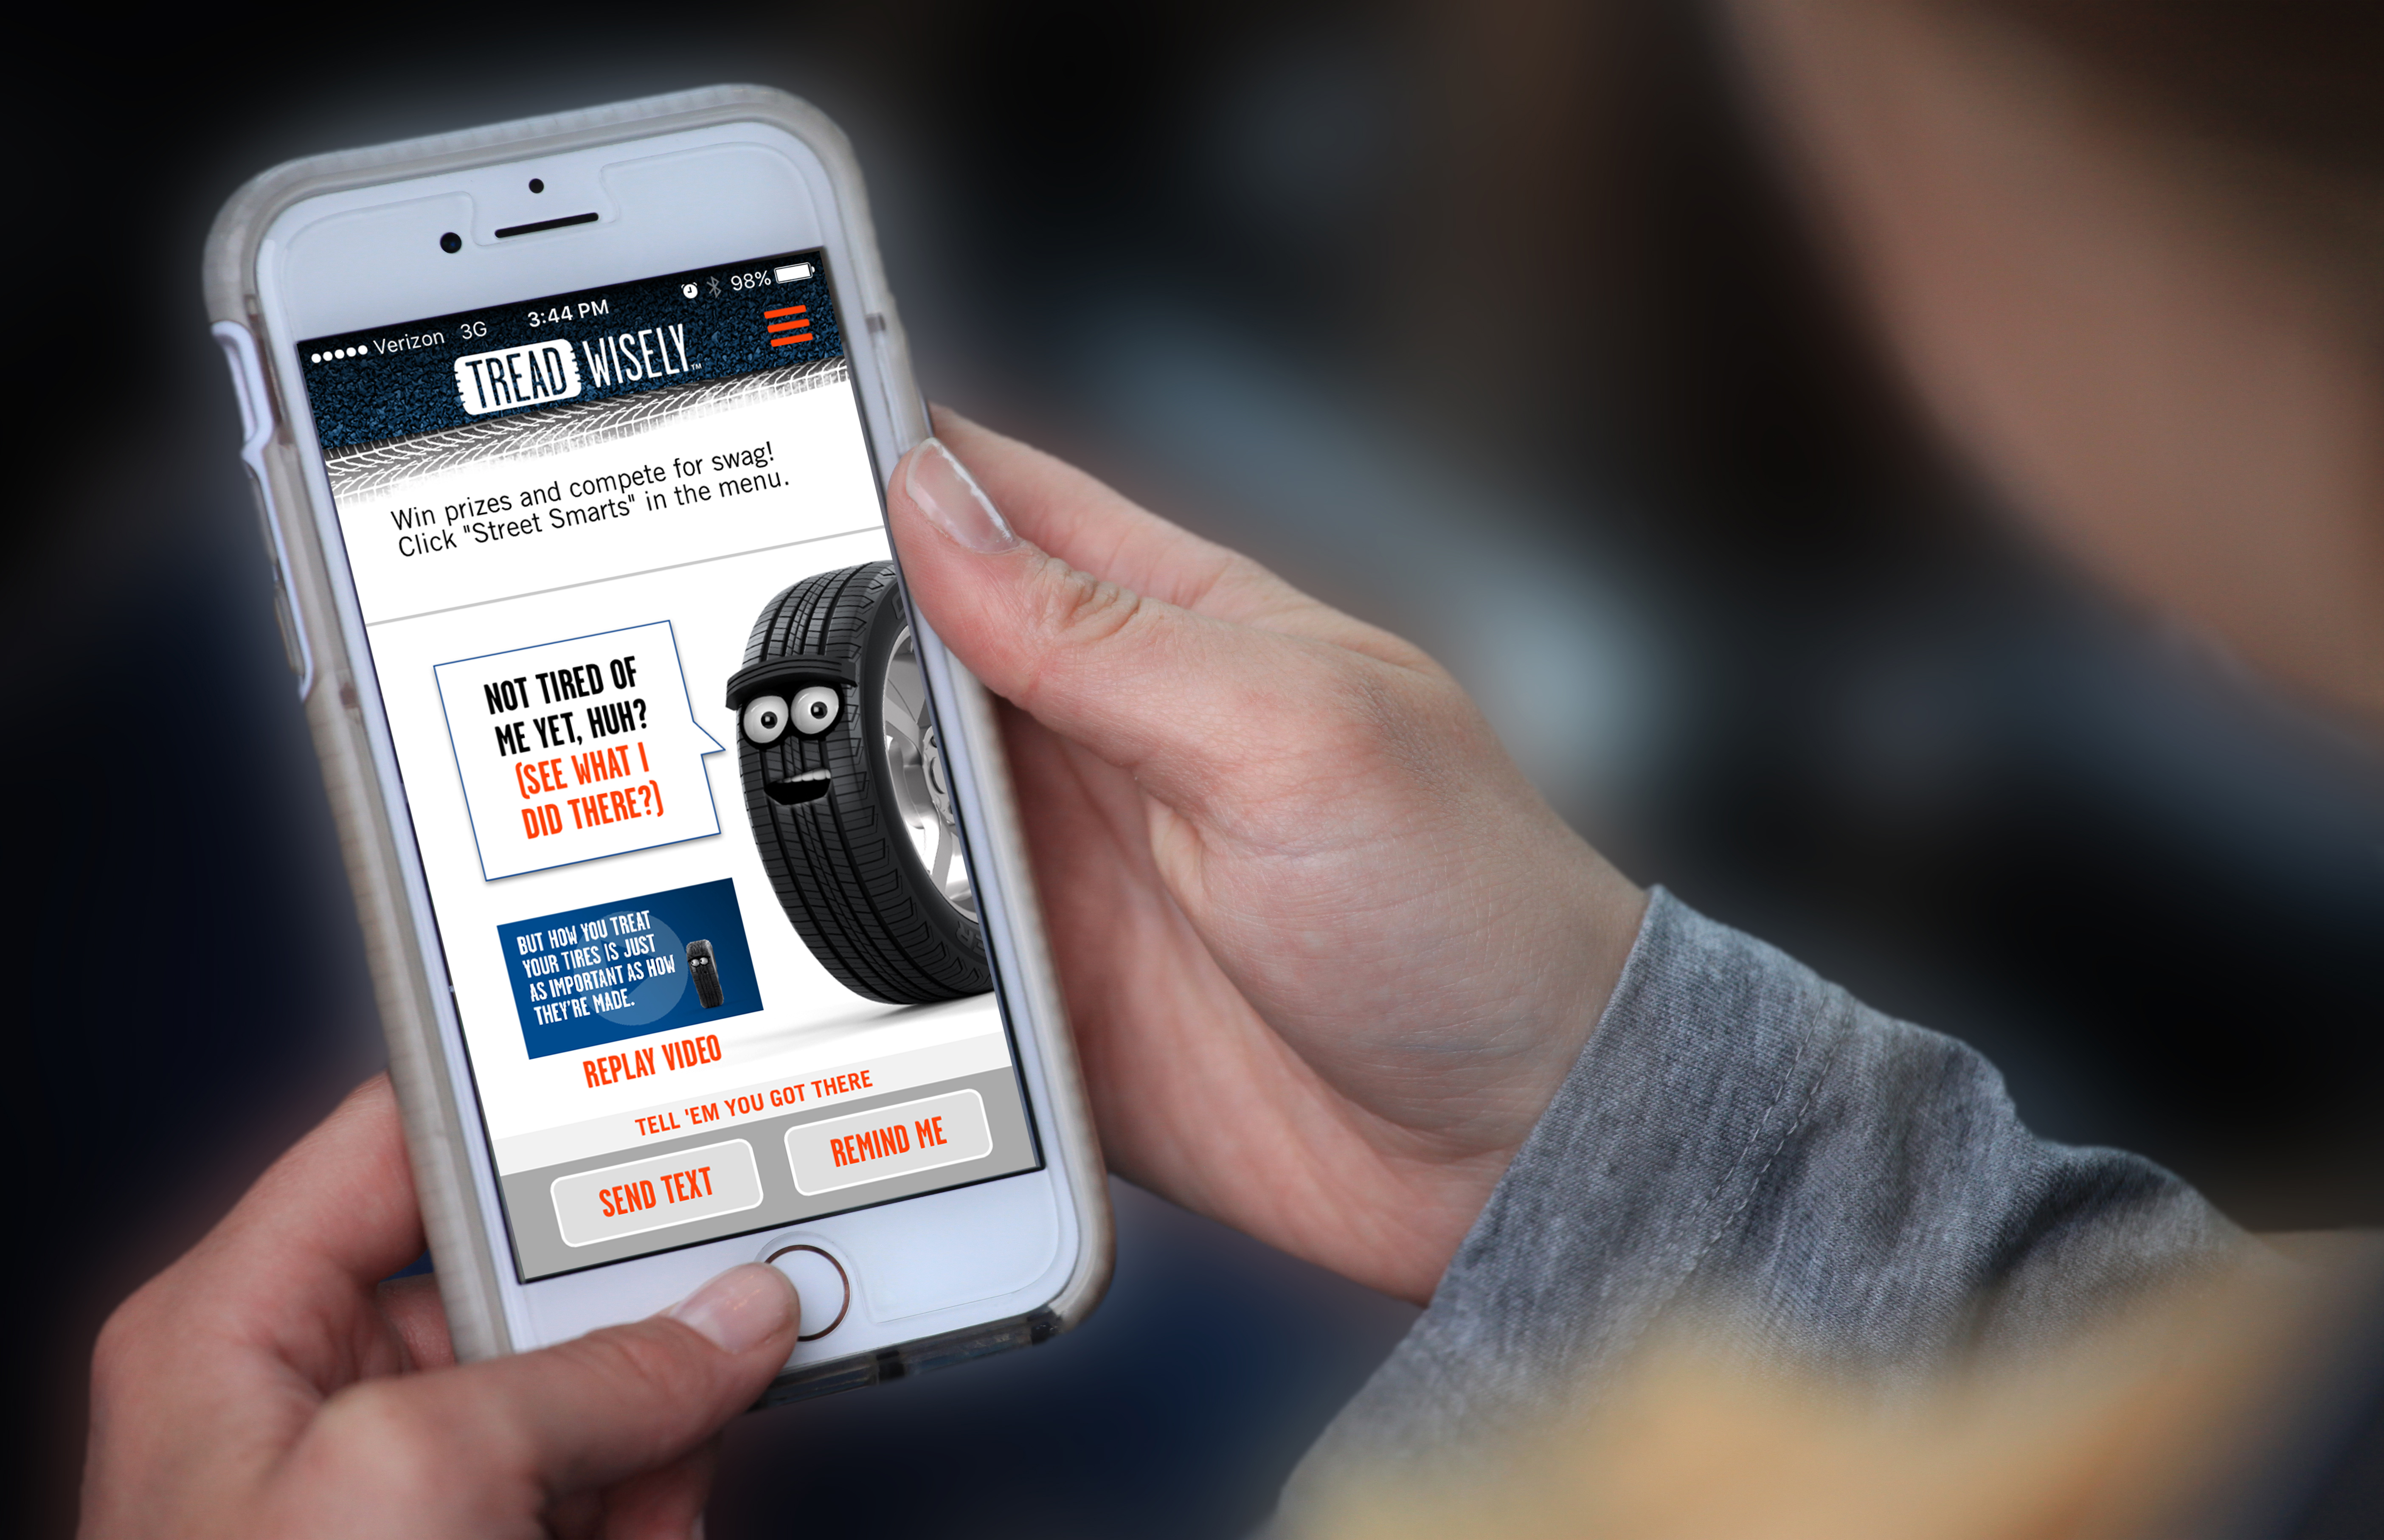 Just in time for the summer driving season, Cooper Tire & Rubber Company, in partnership with the National Organizations for Youth Safety (NOYS), has launched a new free app, Tread Wisely. The app helps young drivers be safe on the road by providing useful tire and vehicle safety information such as how-to videos on topics such as how to change a flat tire, what to do if you are in a car accident and more. The app is free and available for Android and iOS devices. (Photo:Business Wire)